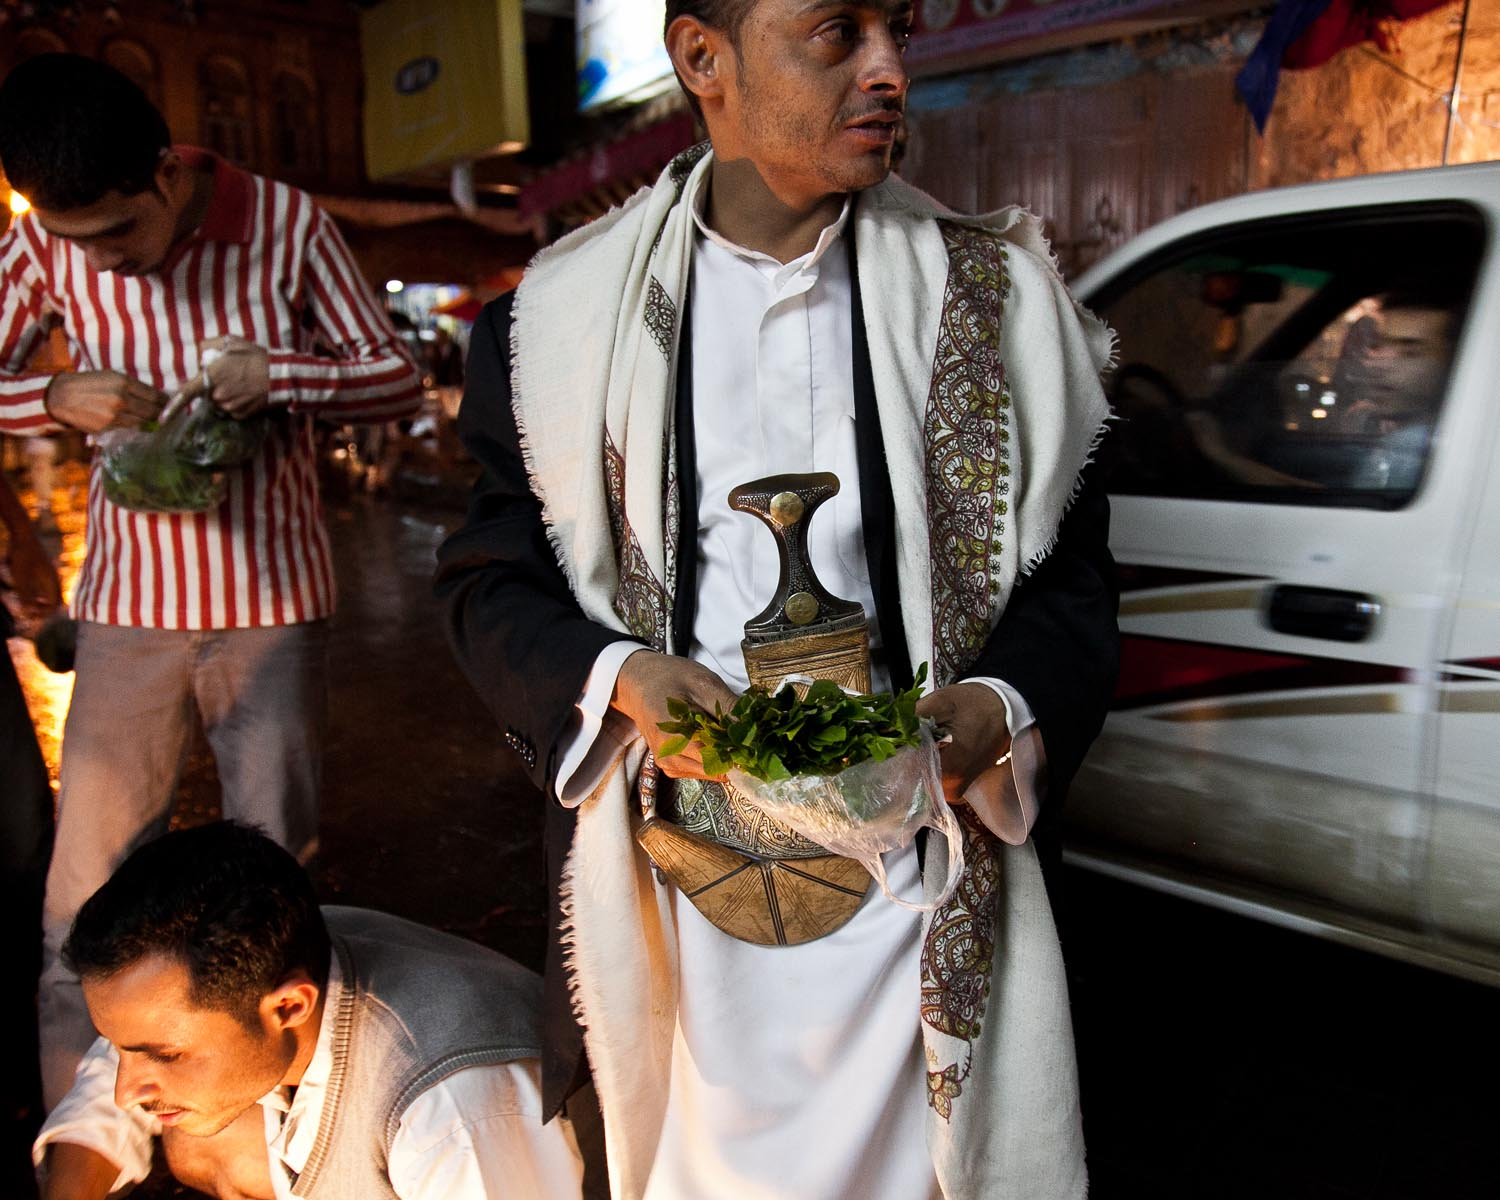 In Sana'a, a man carries a bundle of khat, a leaf chewed as a stimulant. August 2010.